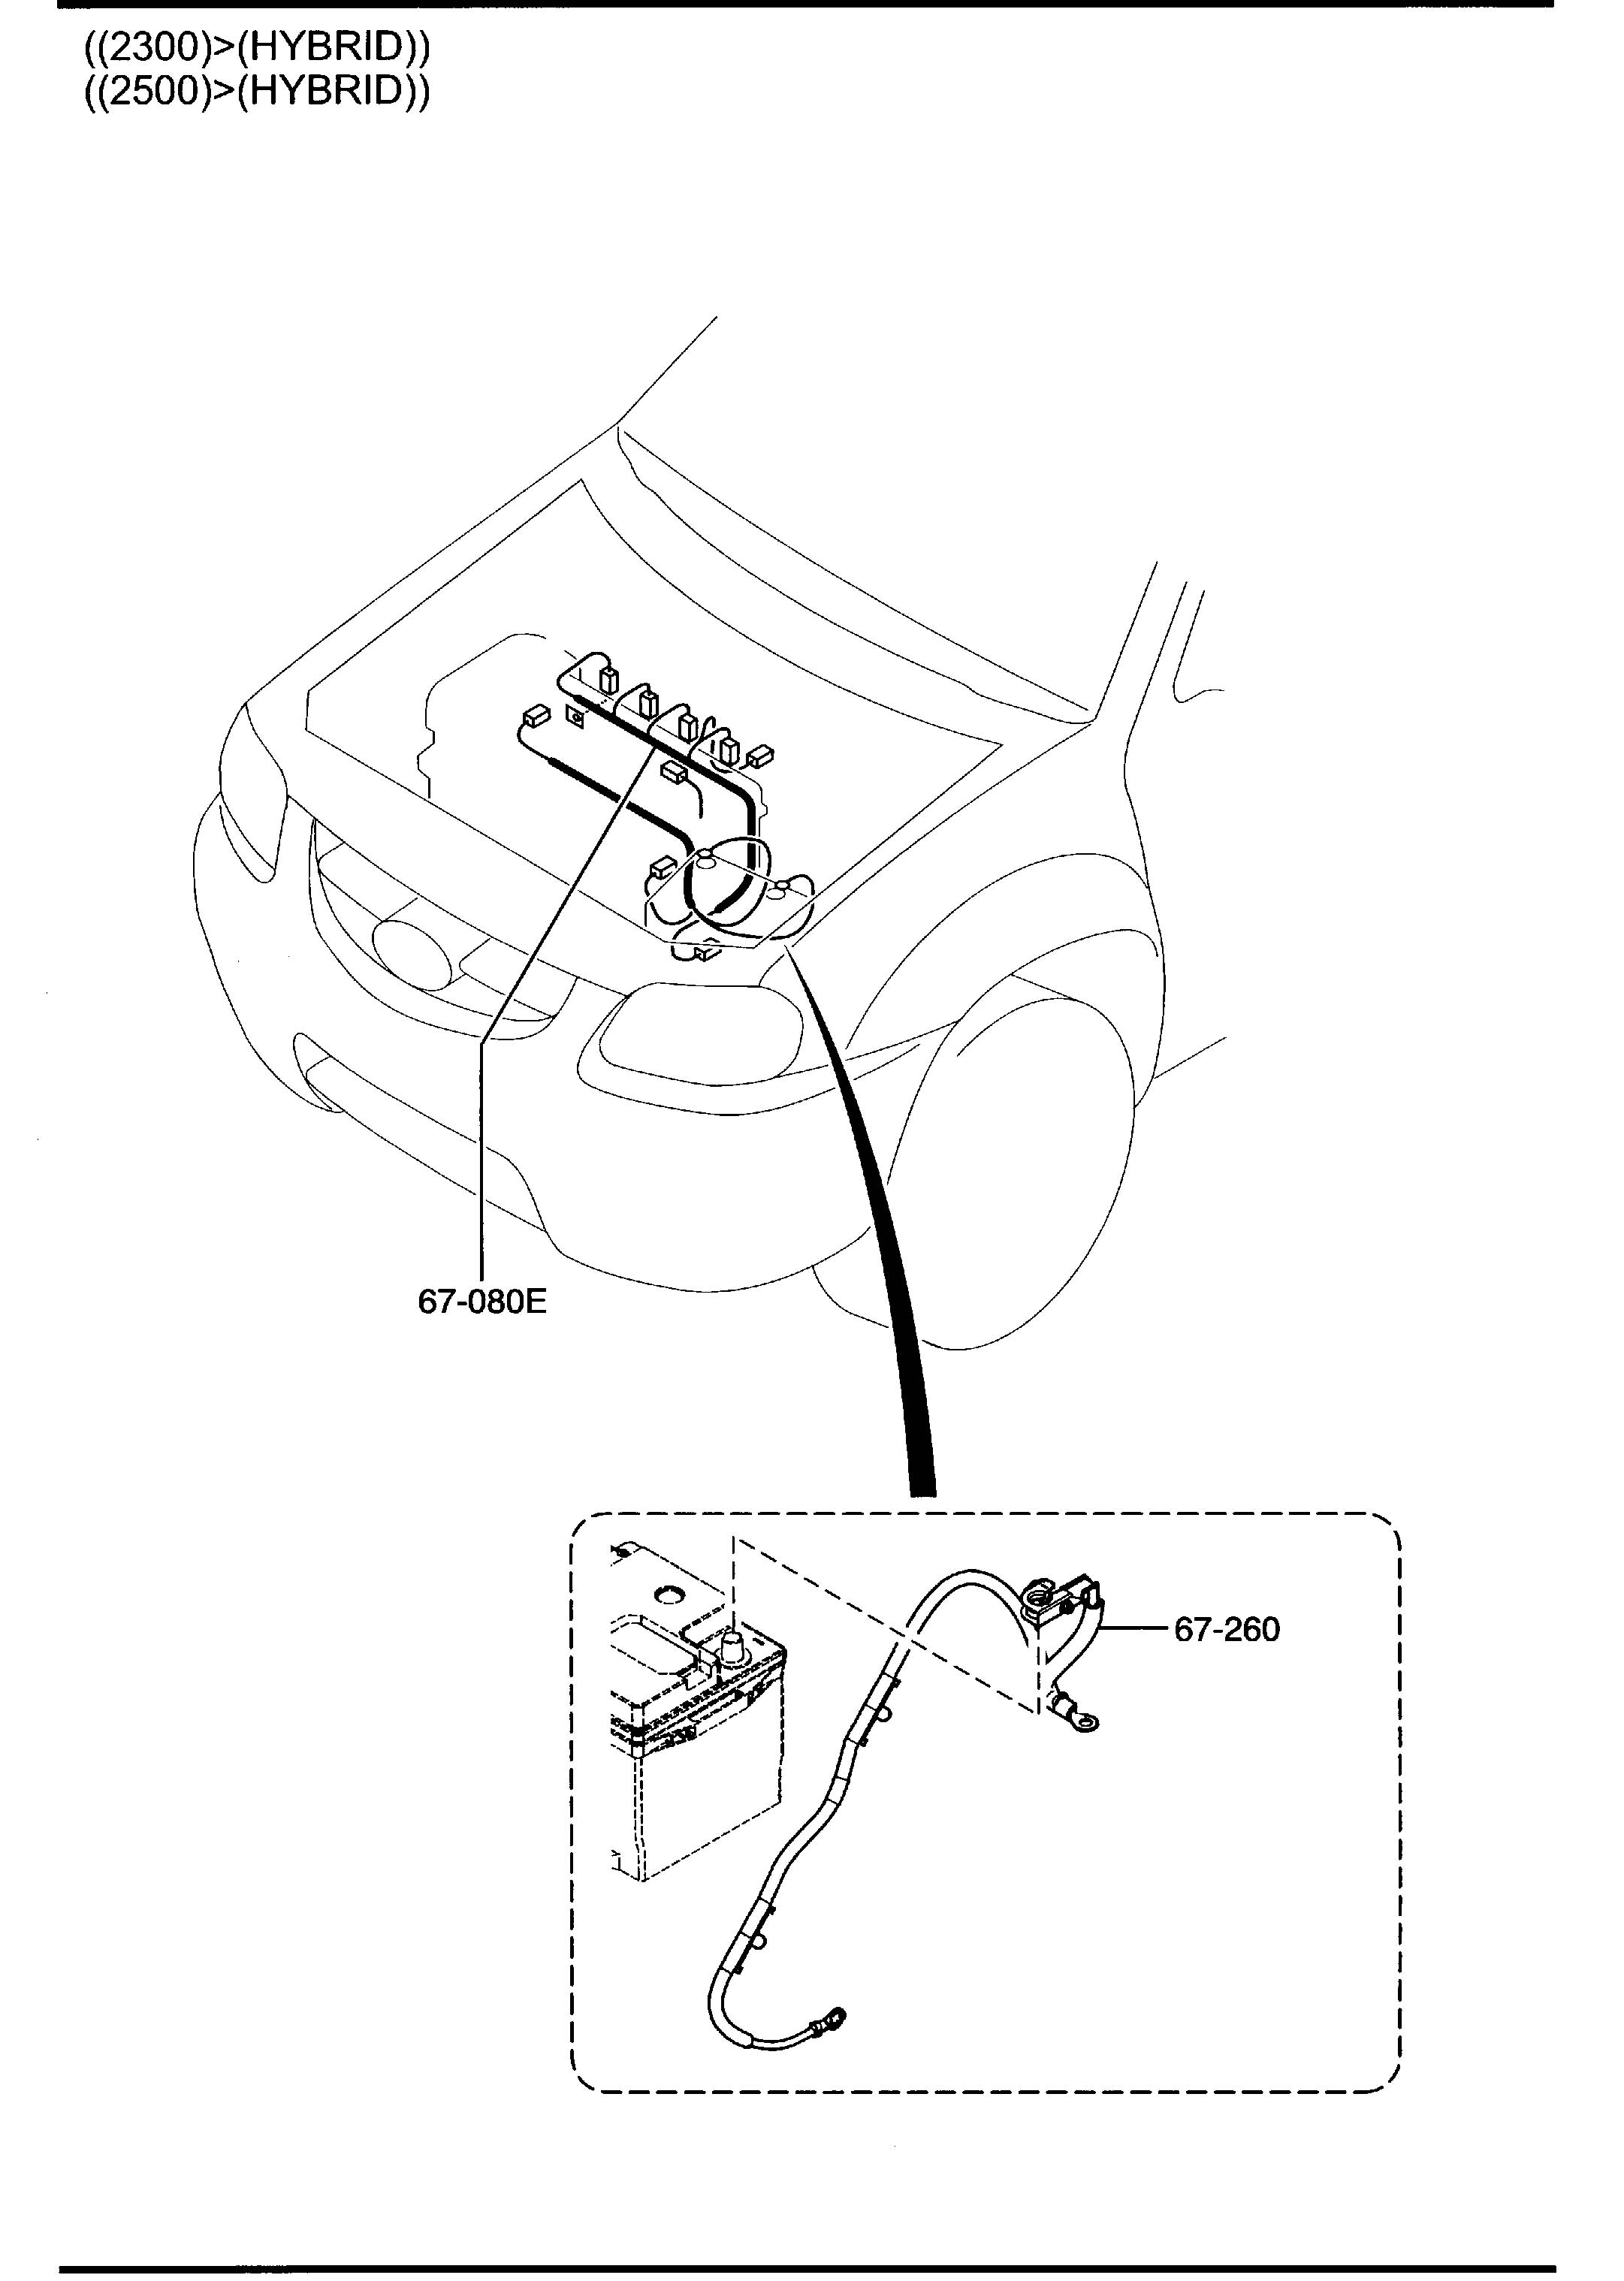 1986 mazda b2000 ignition wiring diagram for 7 pin trailer plug vacuum html imageresizertool com